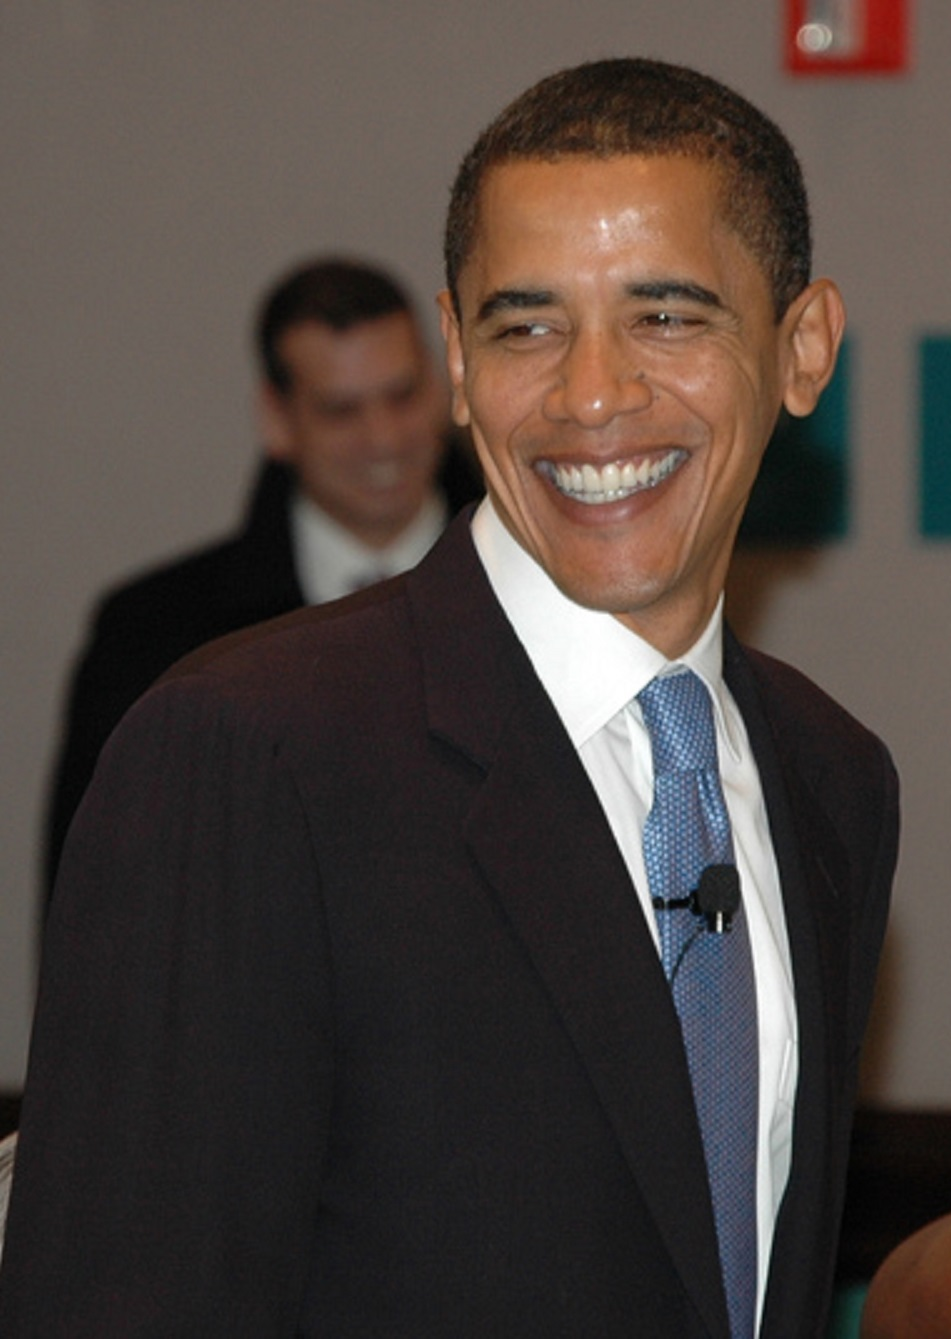 Image of Obama smiling